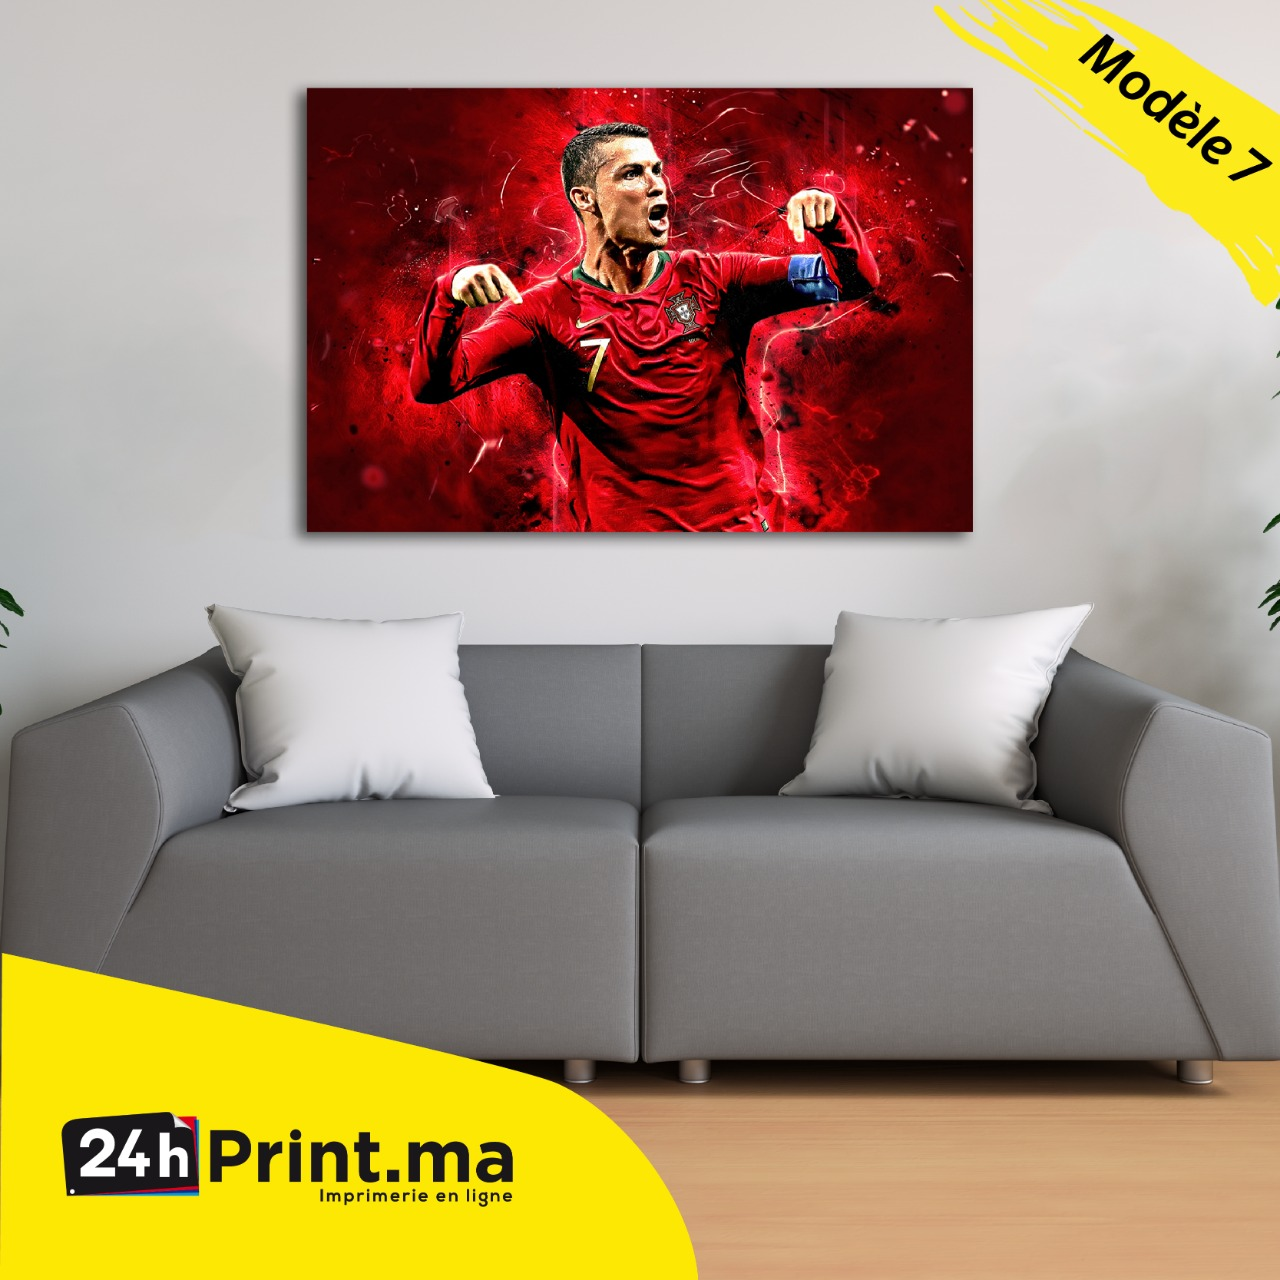 https://www.24hprint.ma/images/products_gallery_images/cr778.jpeg